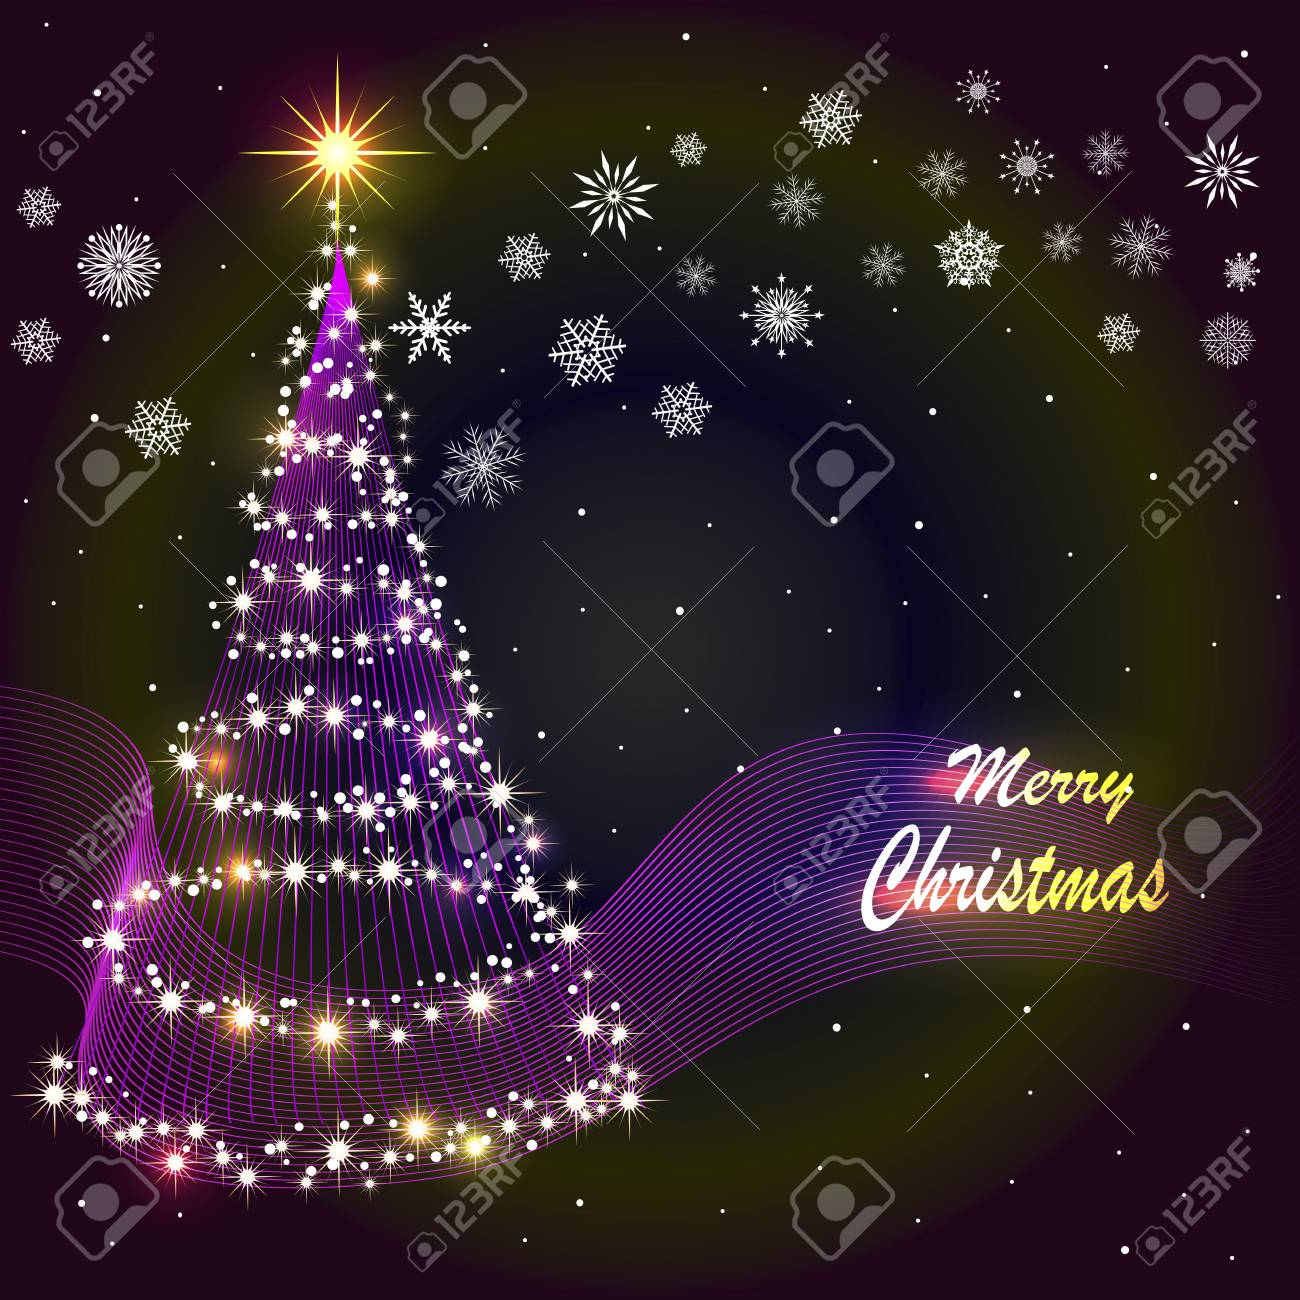 Abstract background with stylized Christmas tree and snowflakes. Eps10. Vector illustration. Stock Vector - 15934143